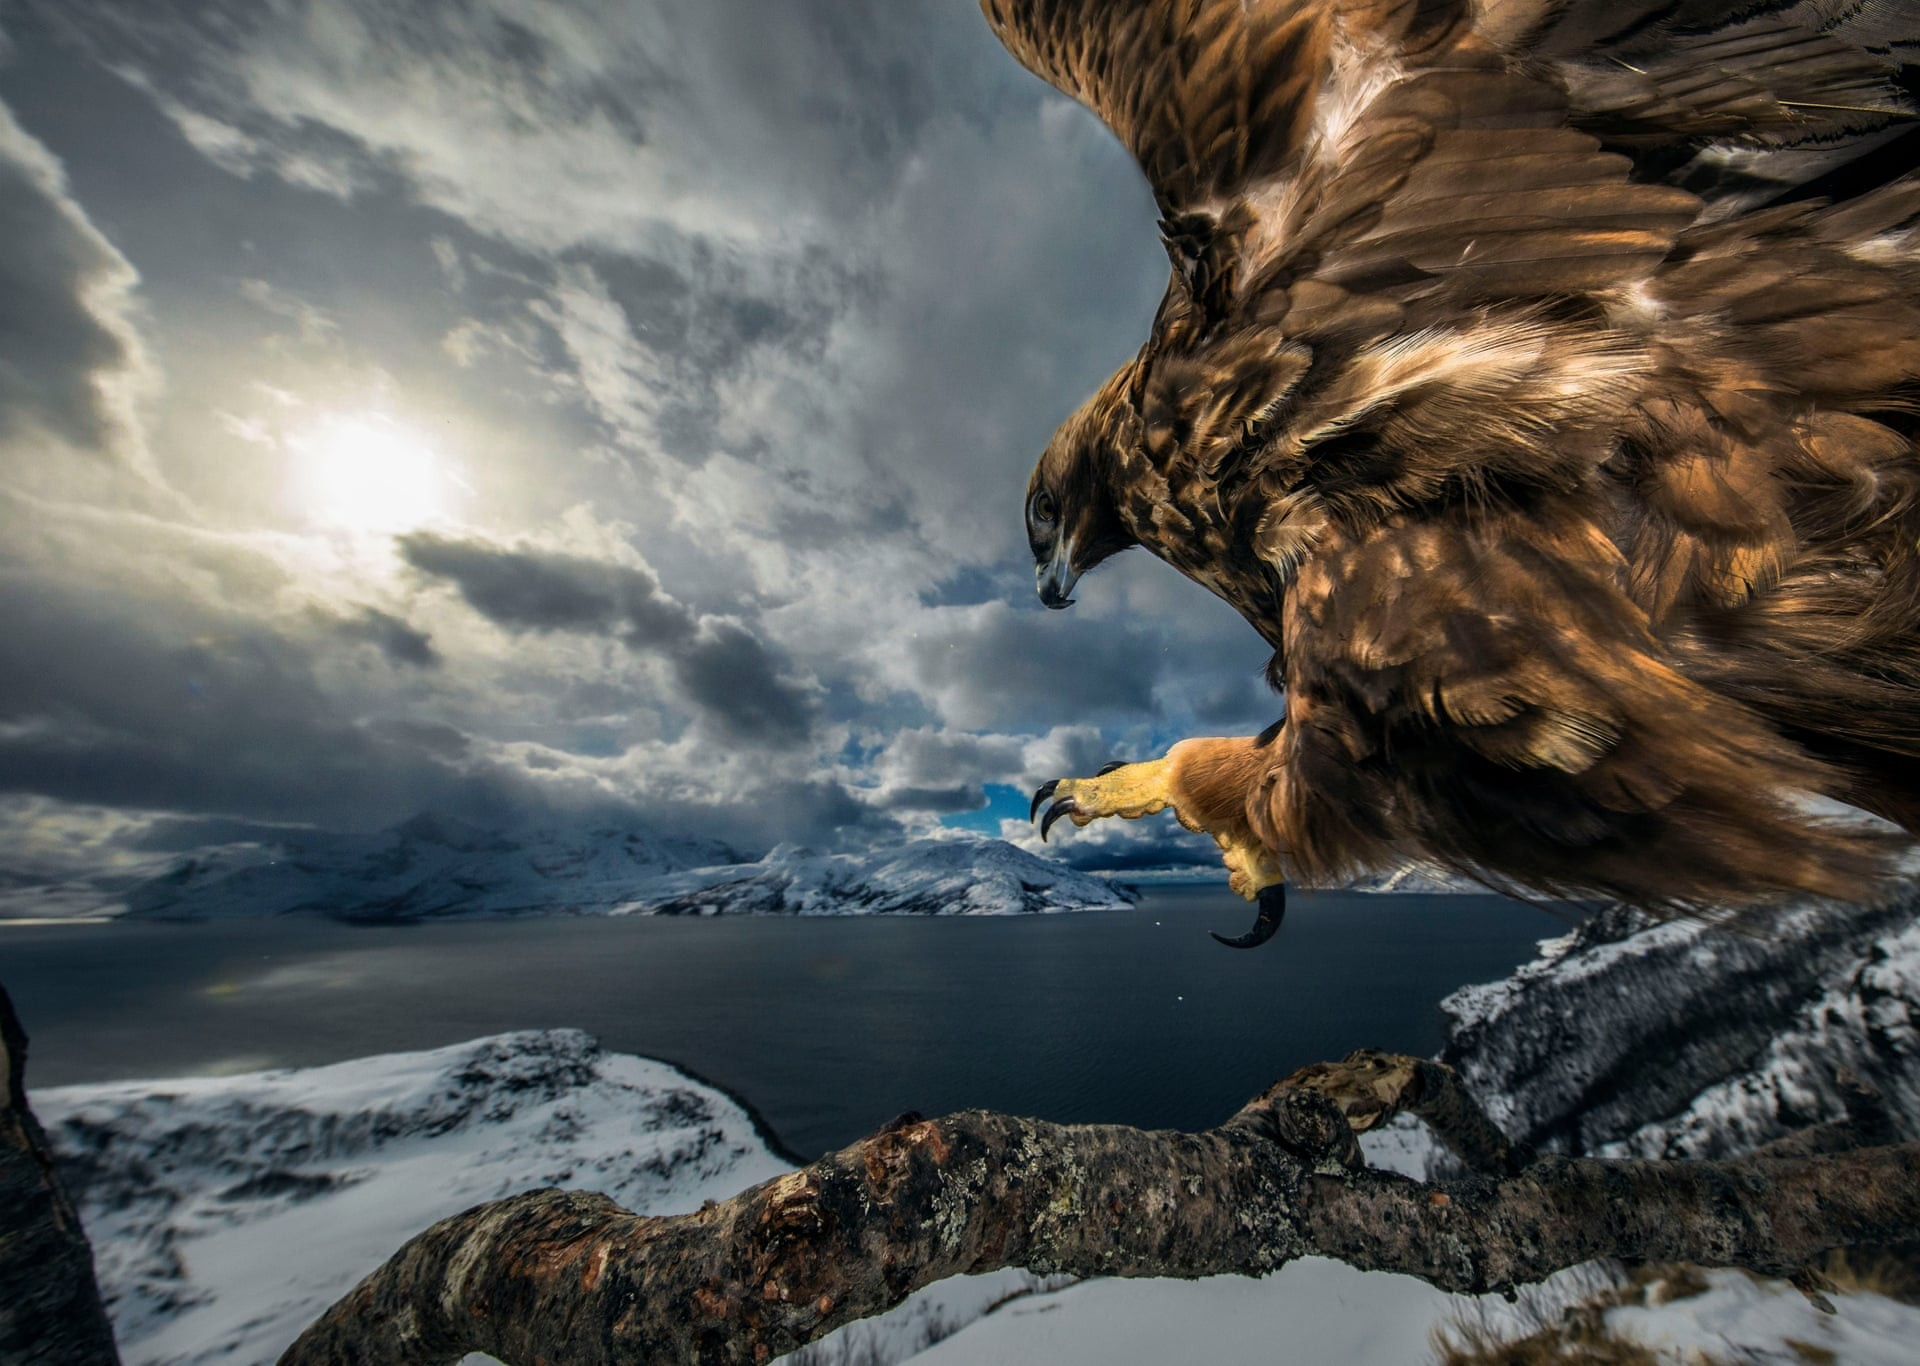 Land of the Eagle (Foto: Audun Rikardsen/2019 Wildlife Photographer of the Year)